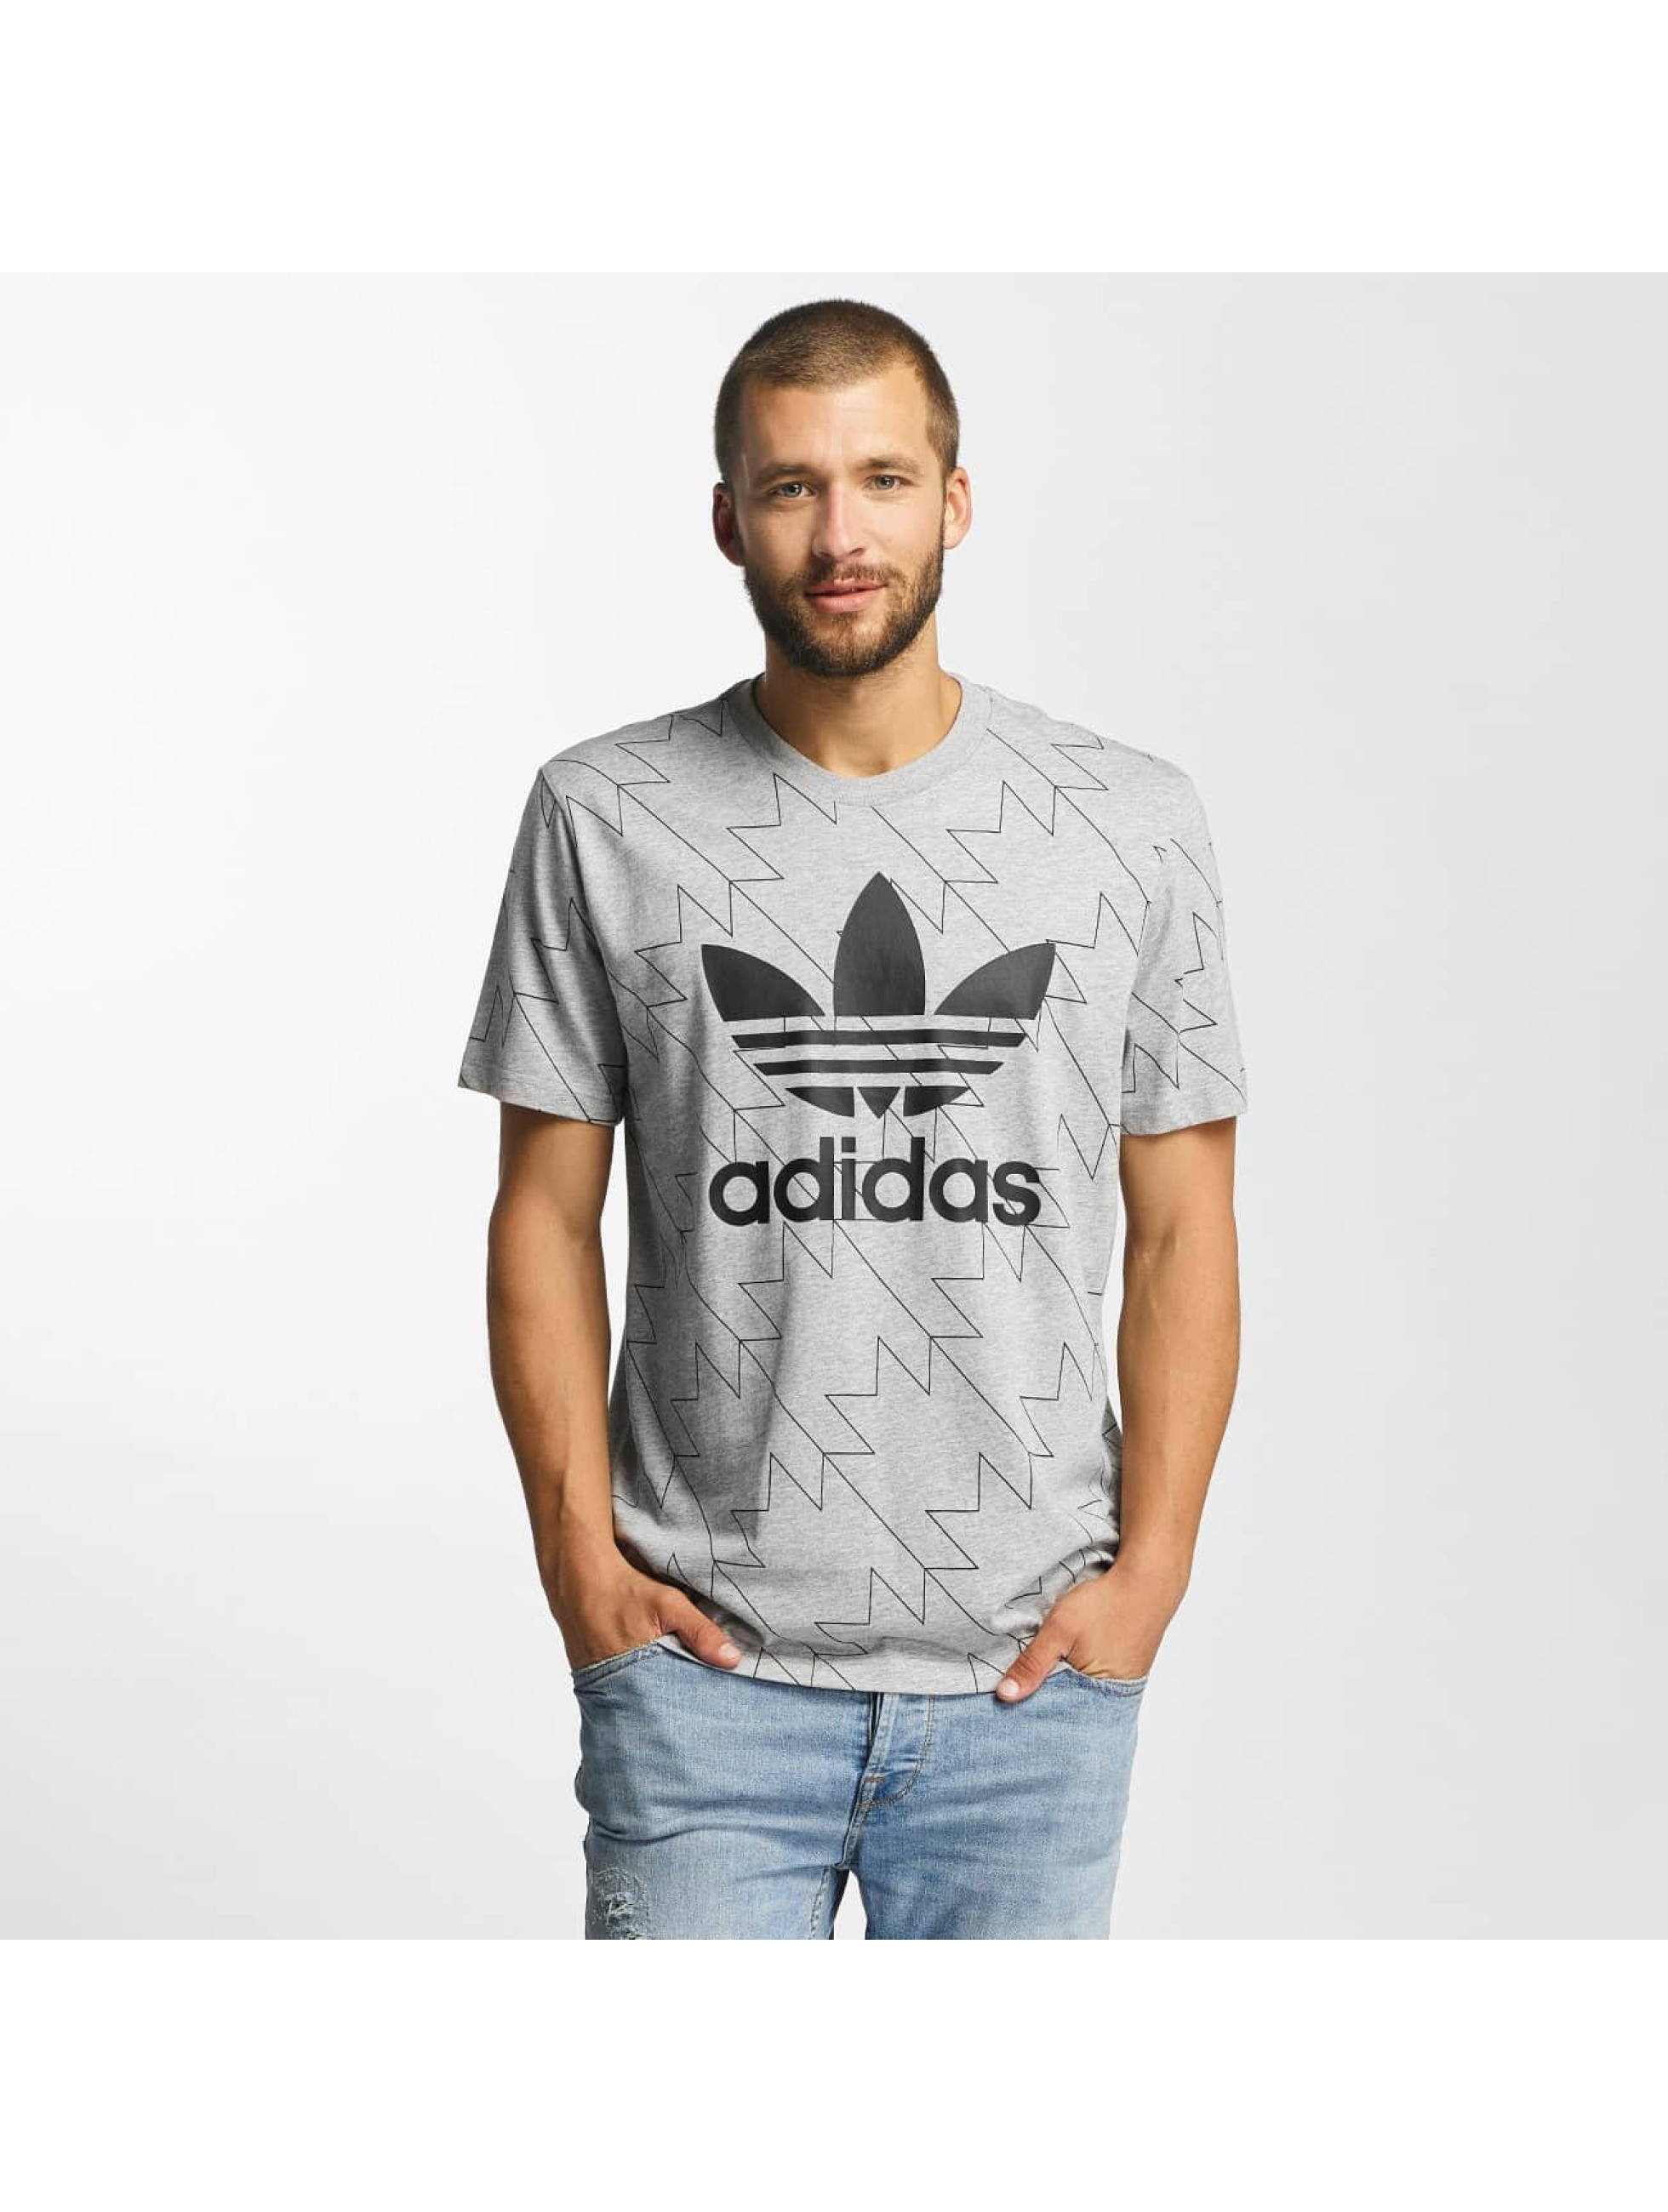 adidas trefoil aop gris homme t shirt adidas acheter pas cher haut 368915. Black Bedroom Furniture Sets. Home Design Ideas